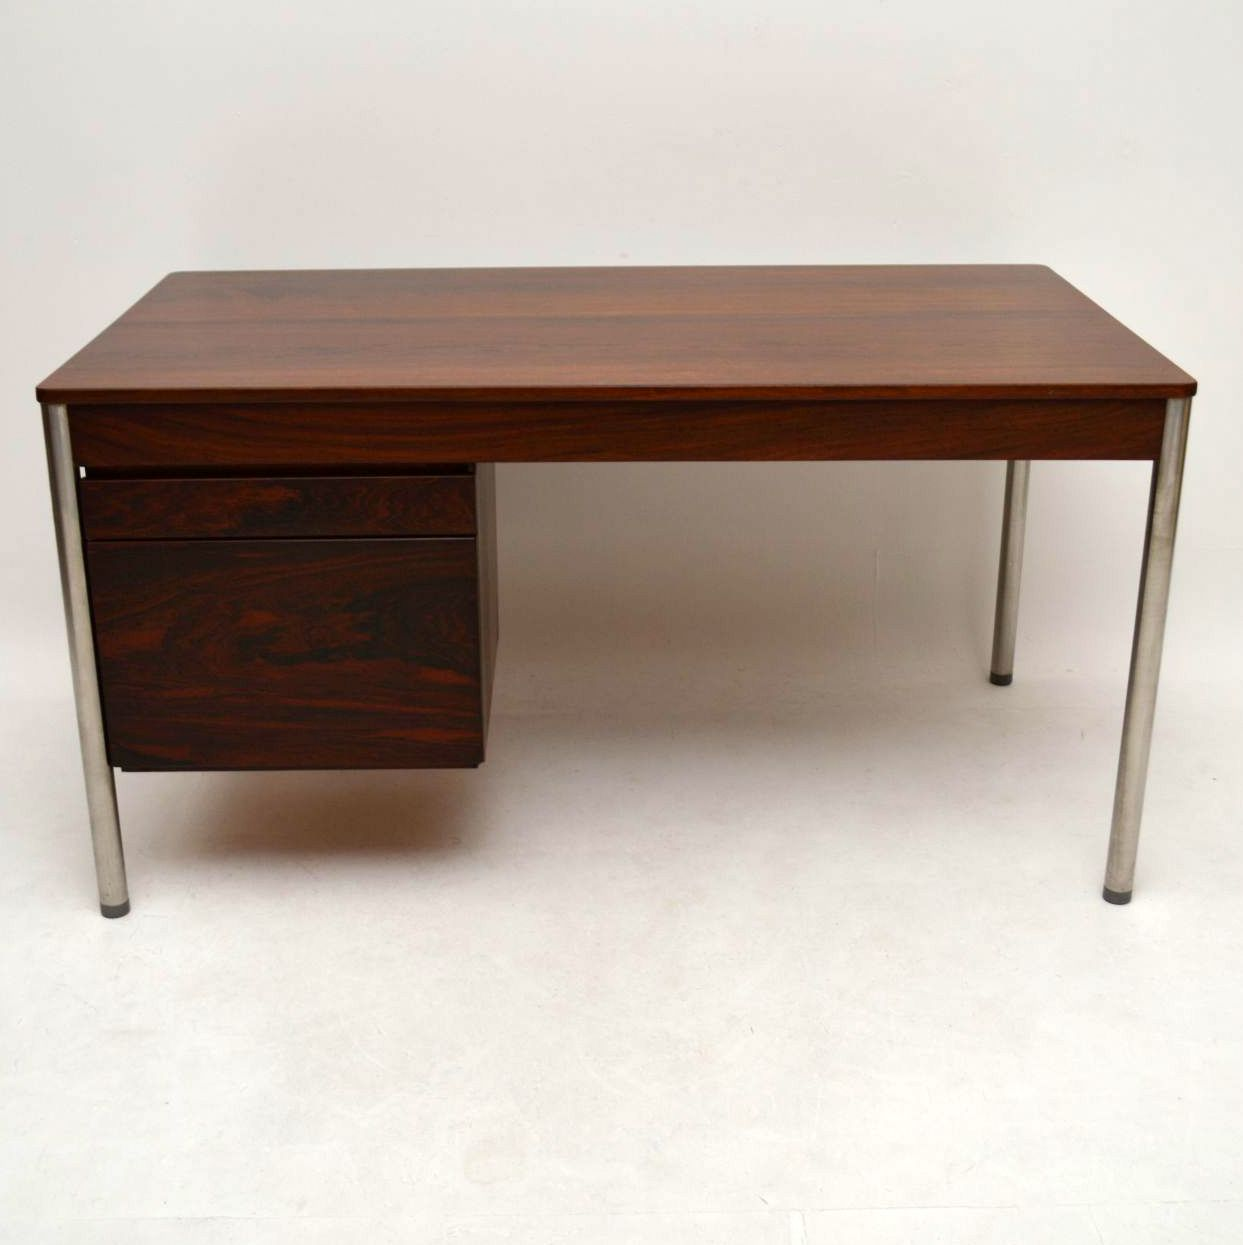 furniture hall console zi wood retro desk solid clearance radian